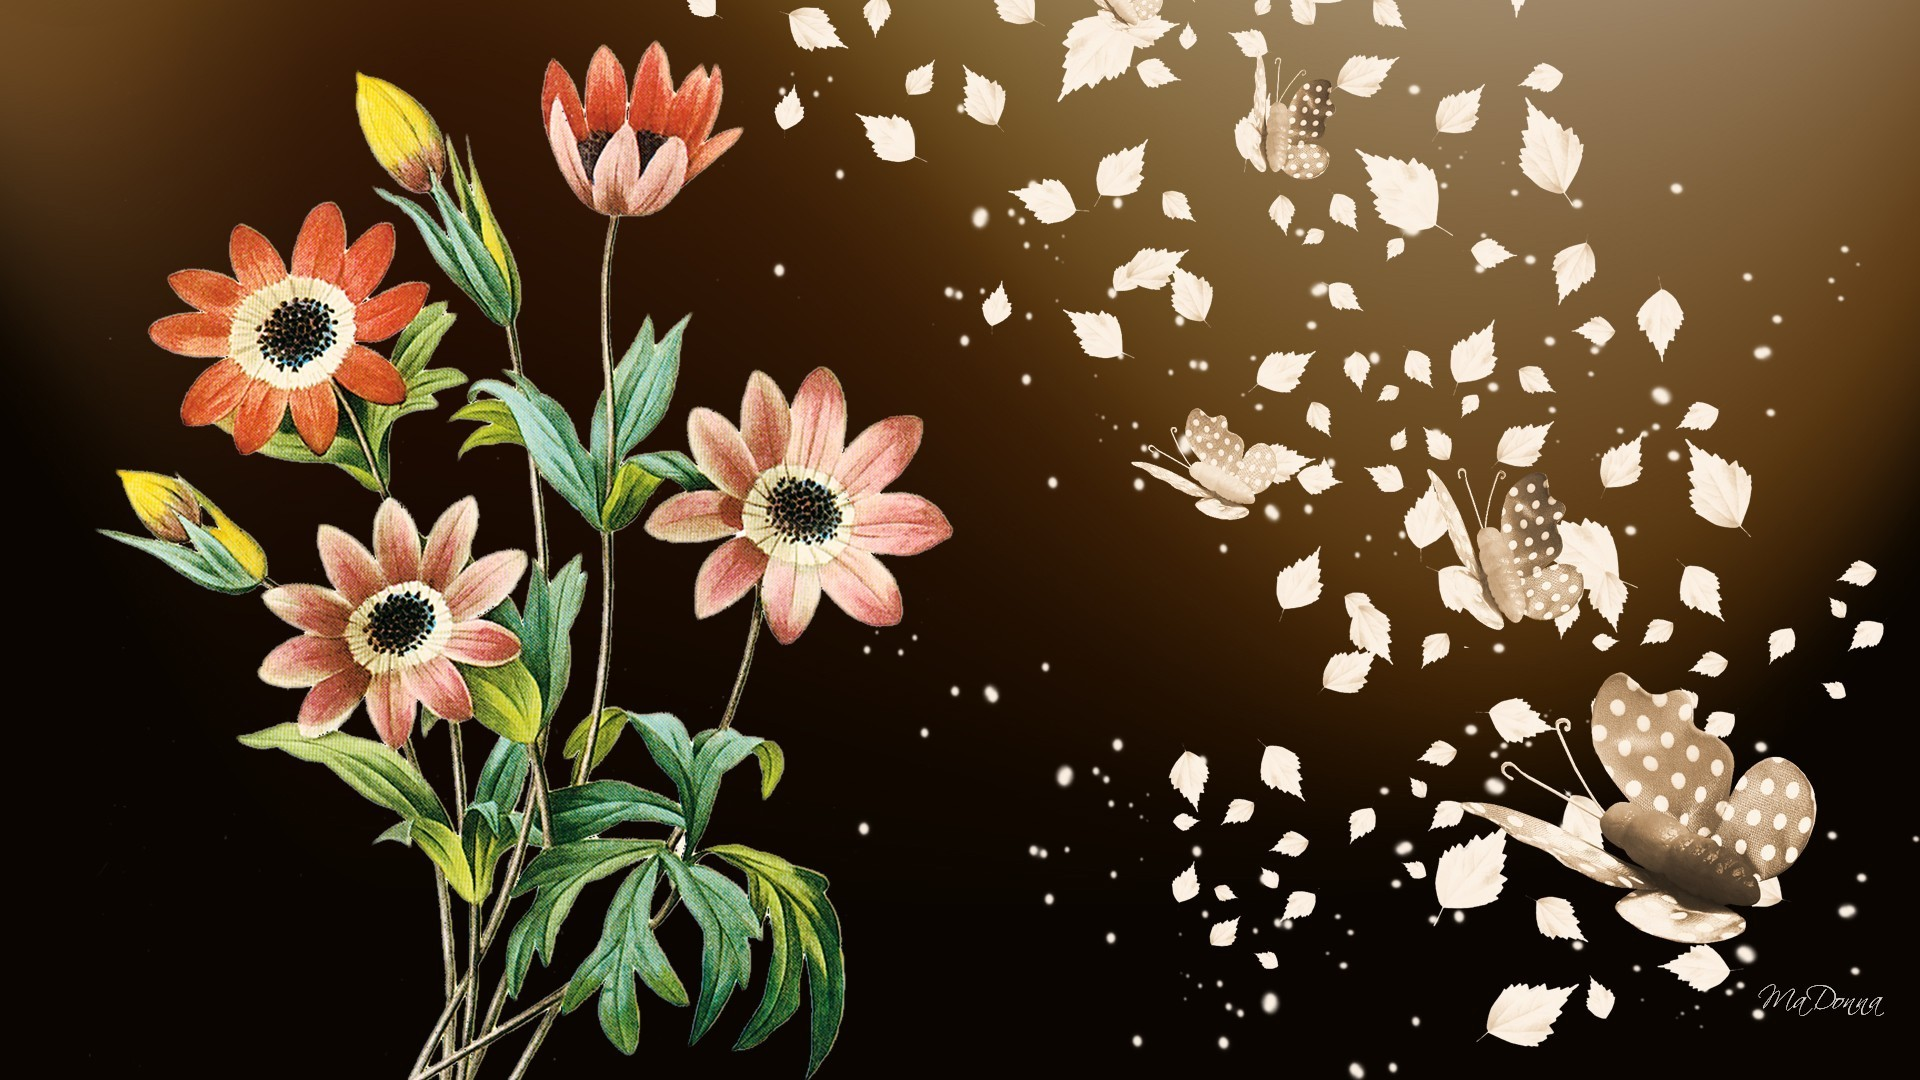 abstract flowers wallpaper (66+ images)